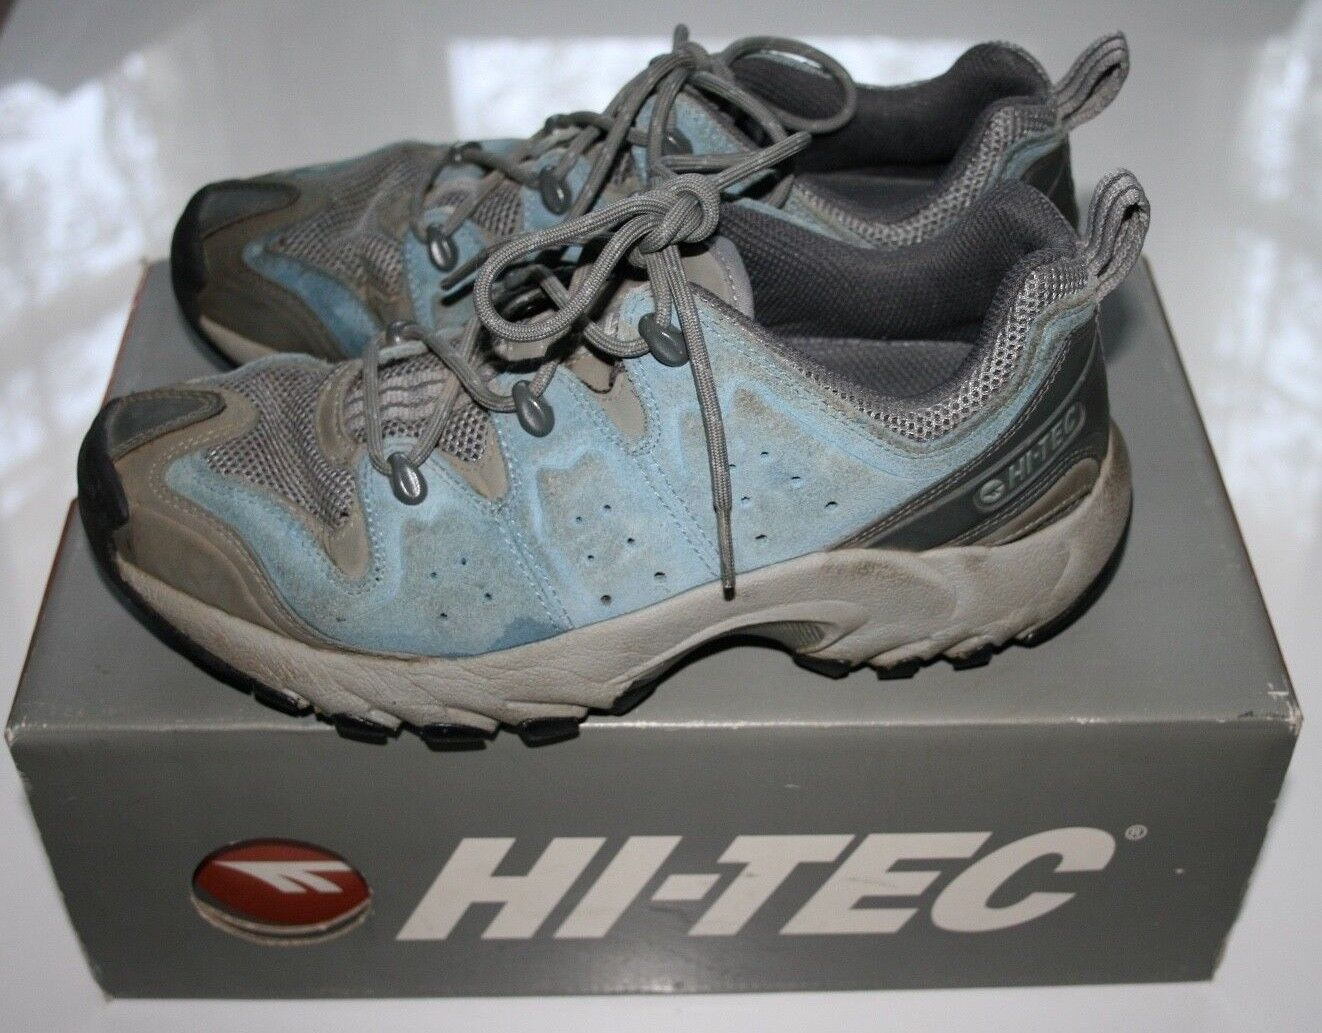 HI-TEC OUTDOOR Aspire Suede Womens Adventure Sport UK7 EU40 Hiking Walking shoes